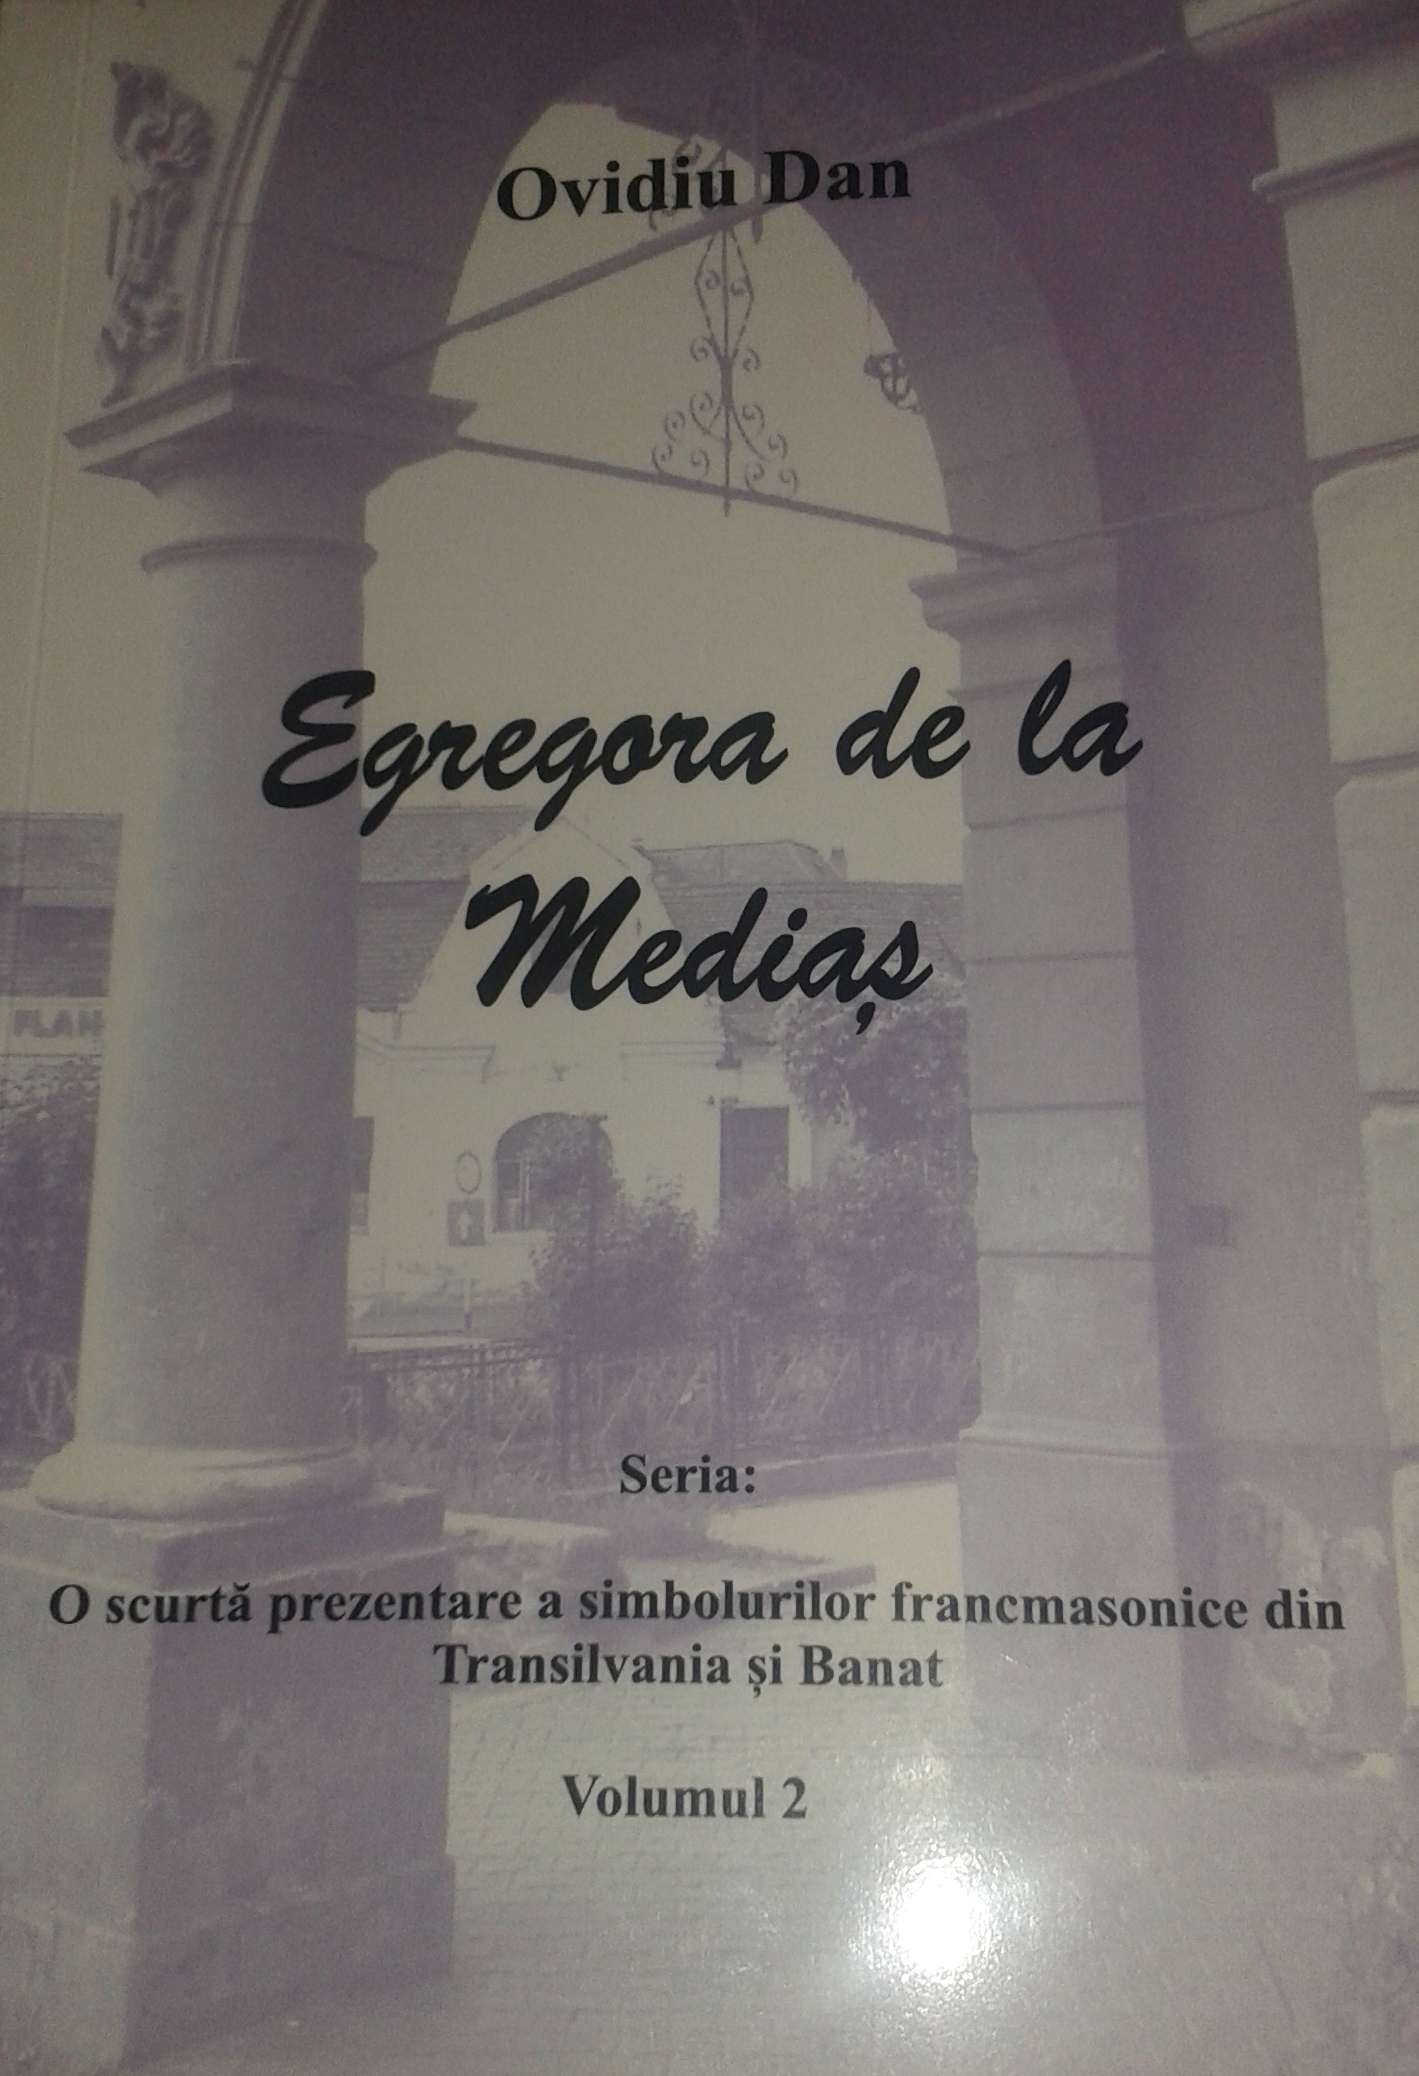 https://ovidiudan.files.wordpress.com/2014/06/egregora-de-la-medias.jpg